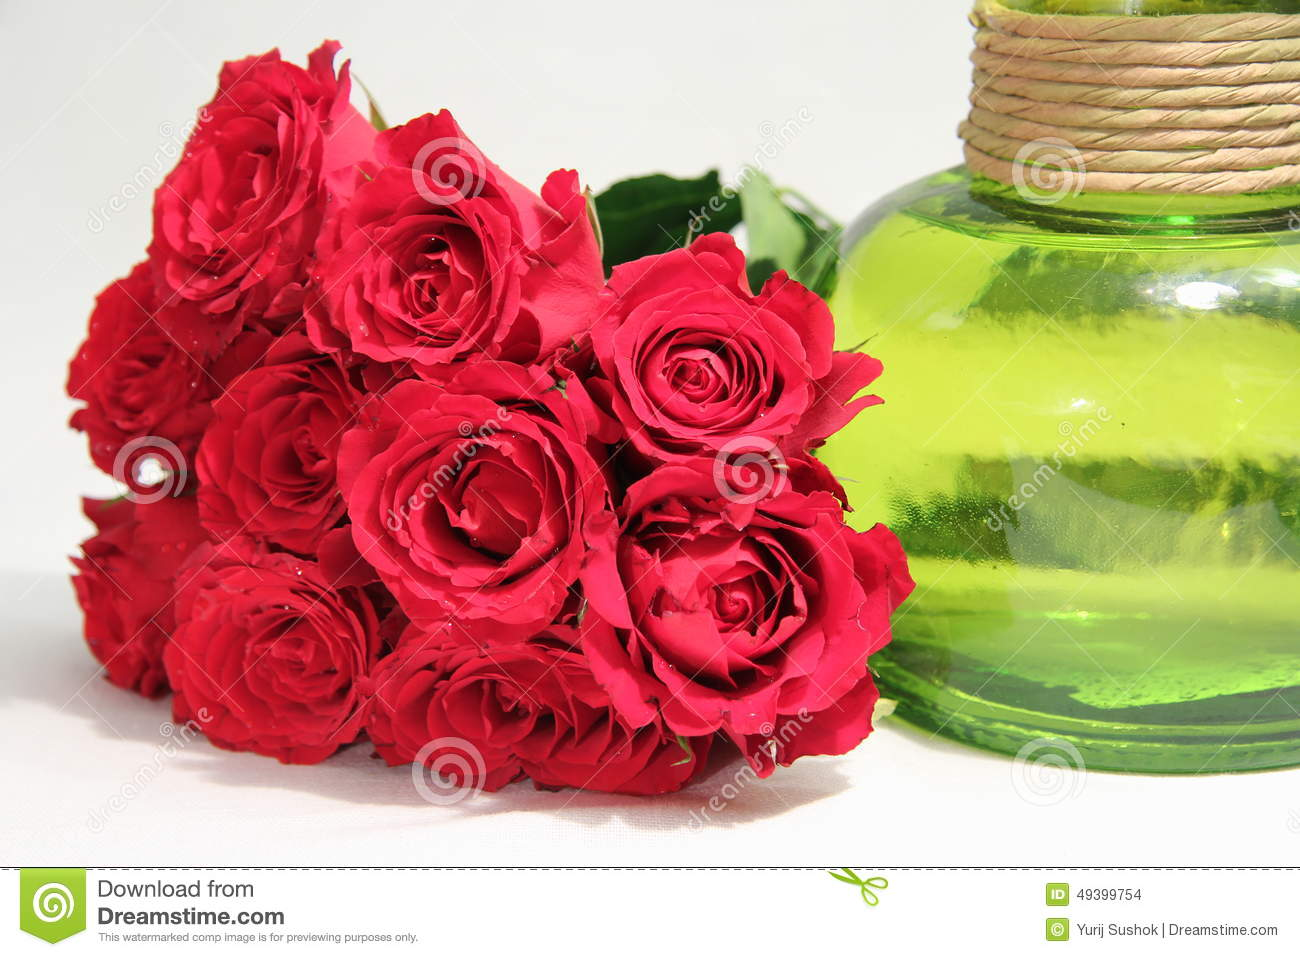 A bouquet of roses and green vase